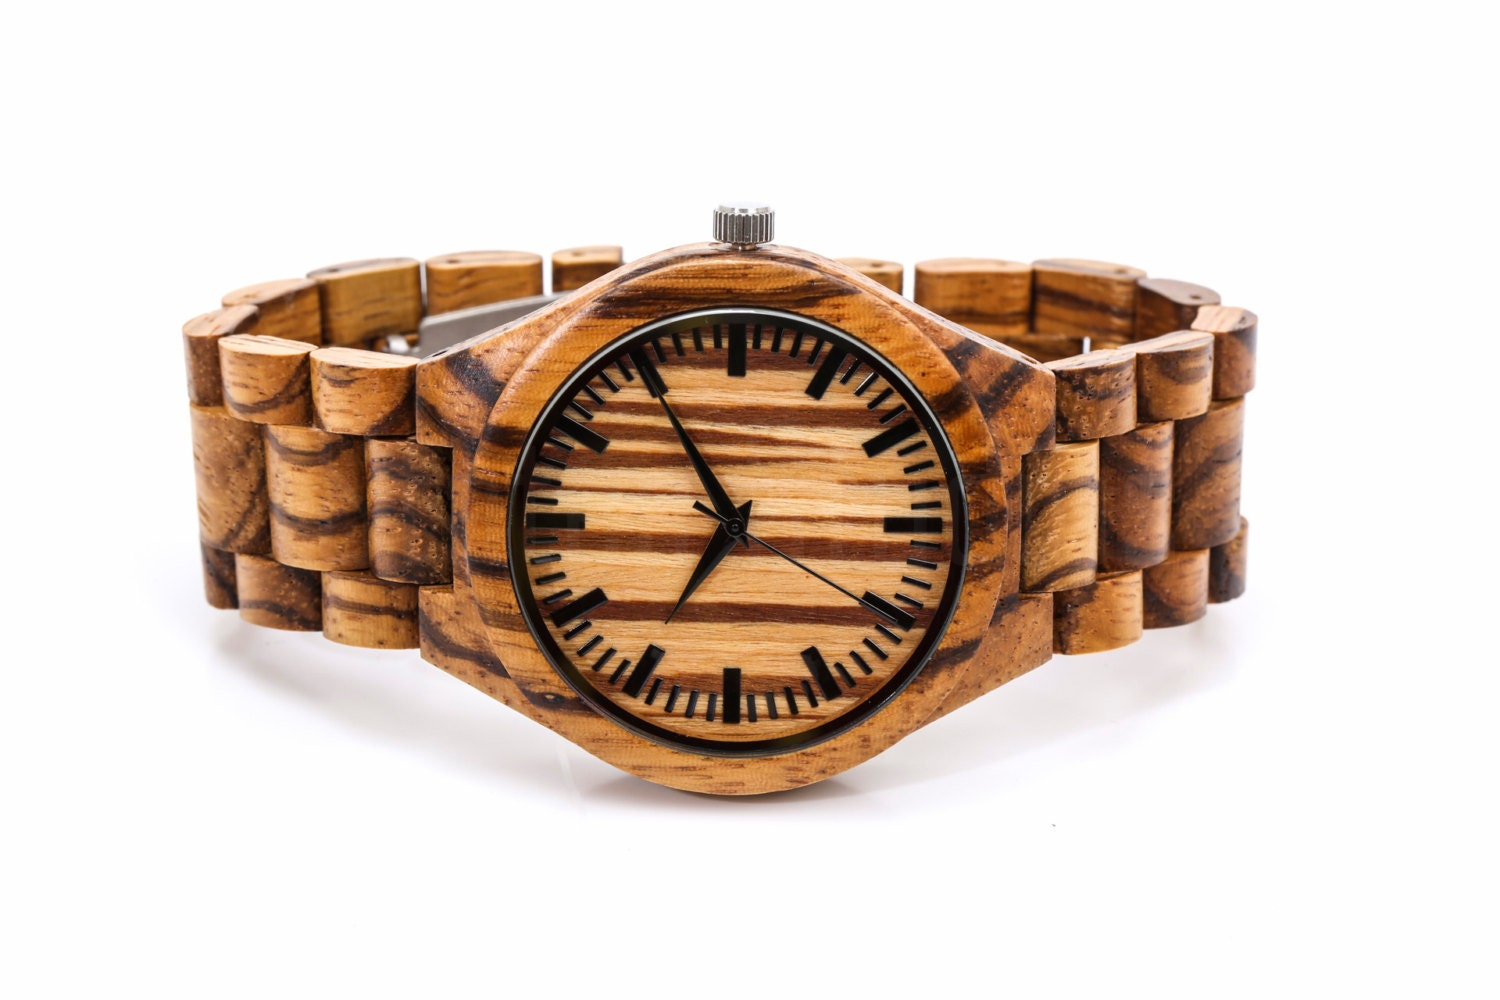 Engraved wooden watch custom fathers day gift mens watches for Watches engraved